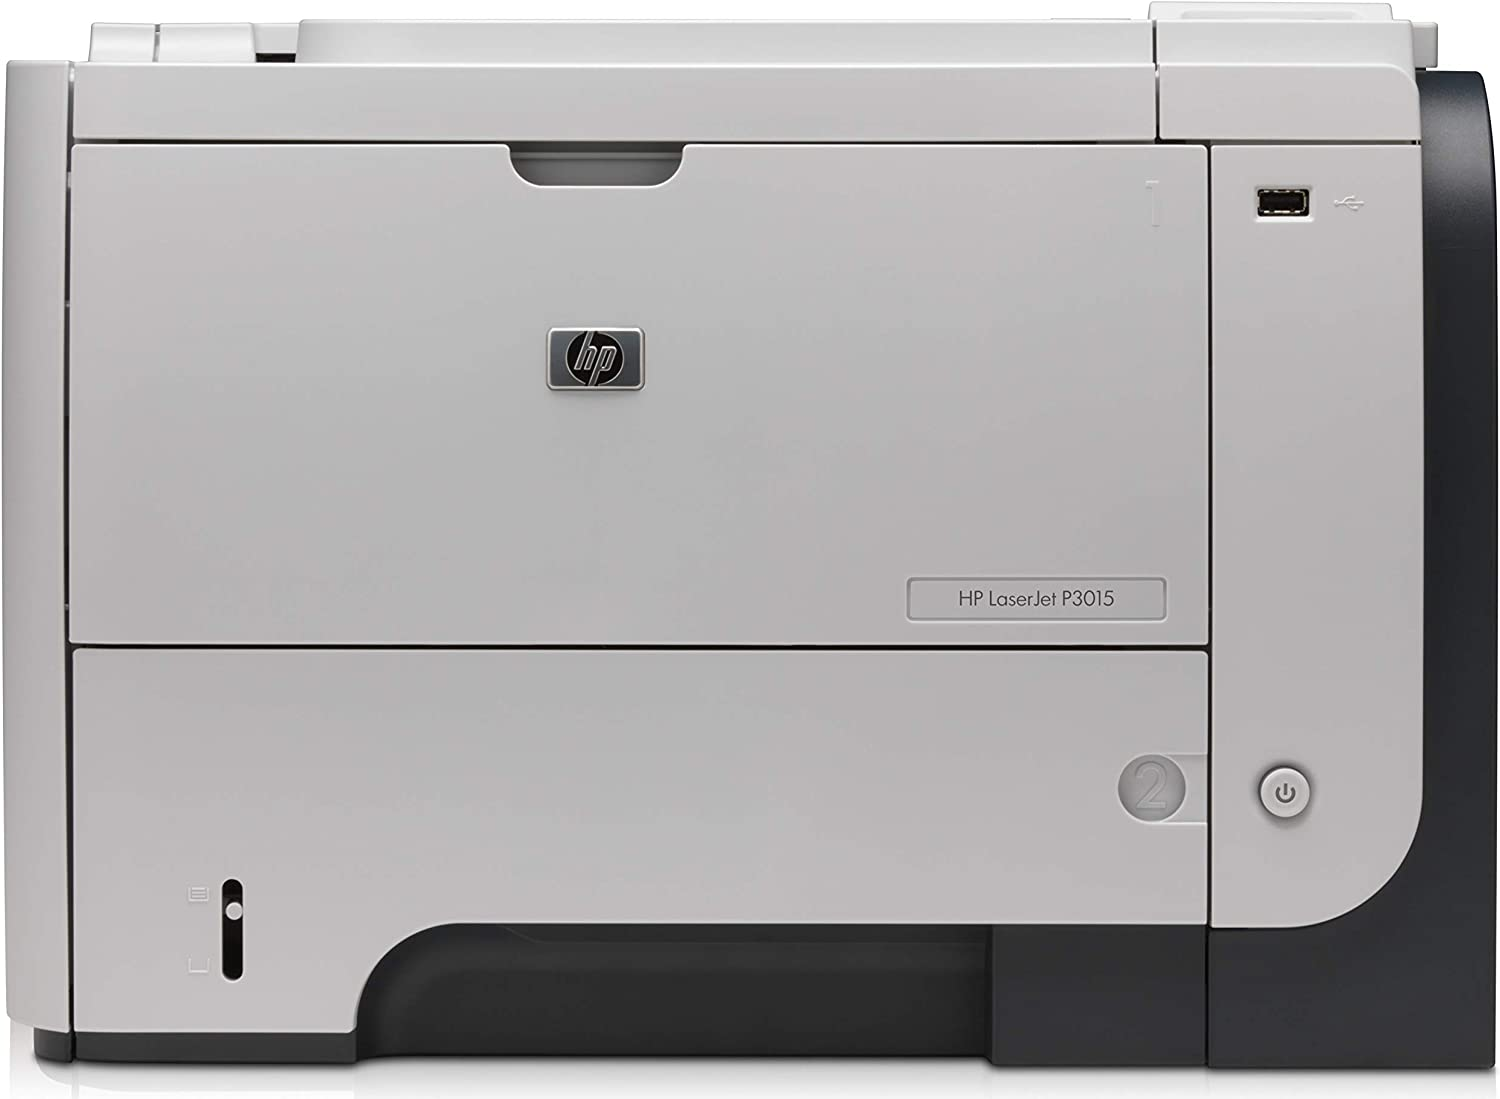 HP LaserJet P3015dn Printer Business Mono Laser printers (PQ) - CE528A#ABA